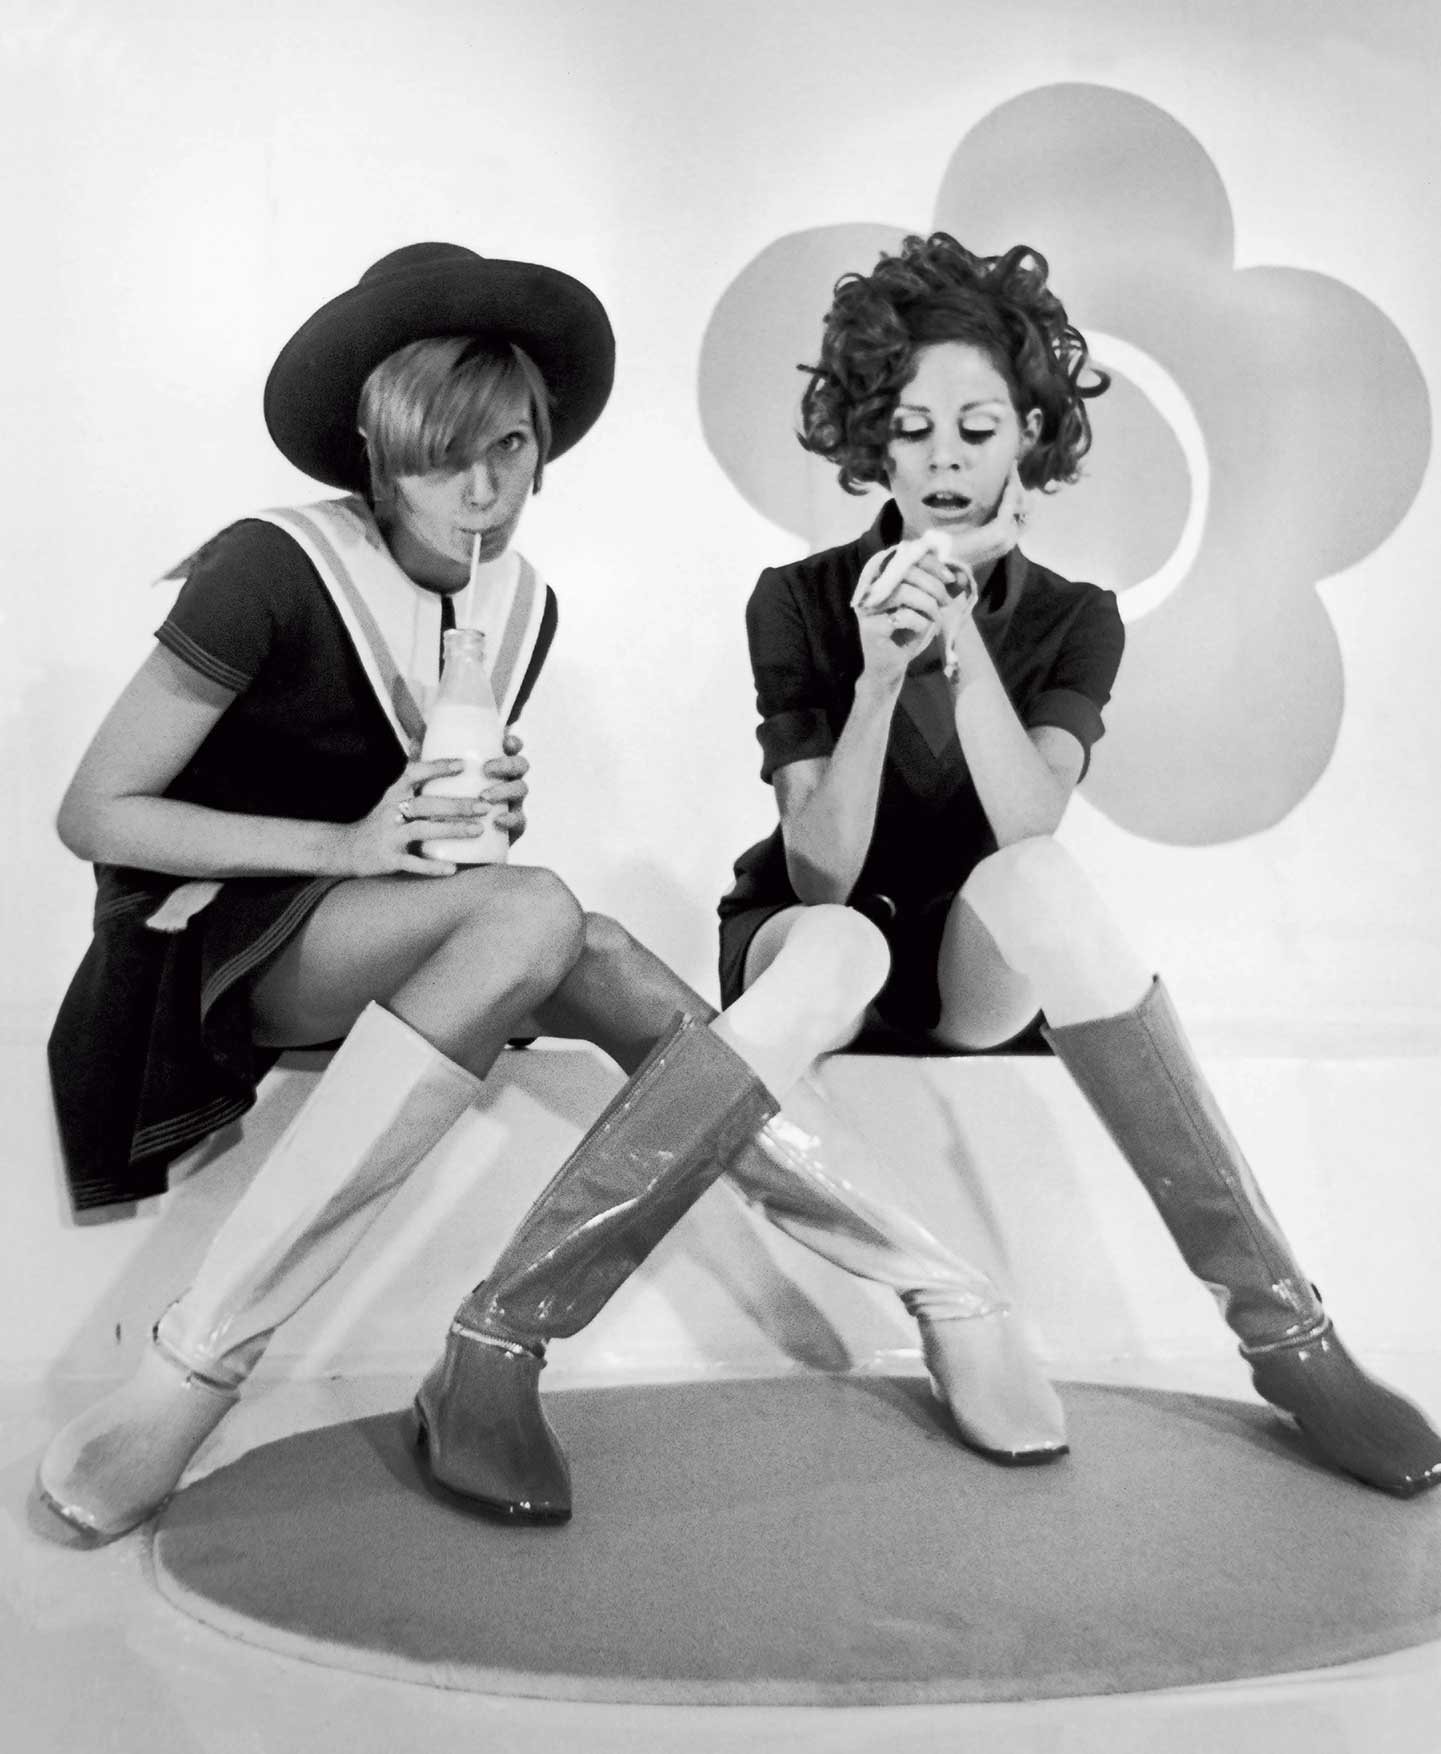 Mary Quant Fashion in 1967: The Models Murph And Jackie presenting Styles By Mary Quant At The Carlton Hotel Image courtesy Keystone-France/Gamma-Keystone via Getty Images